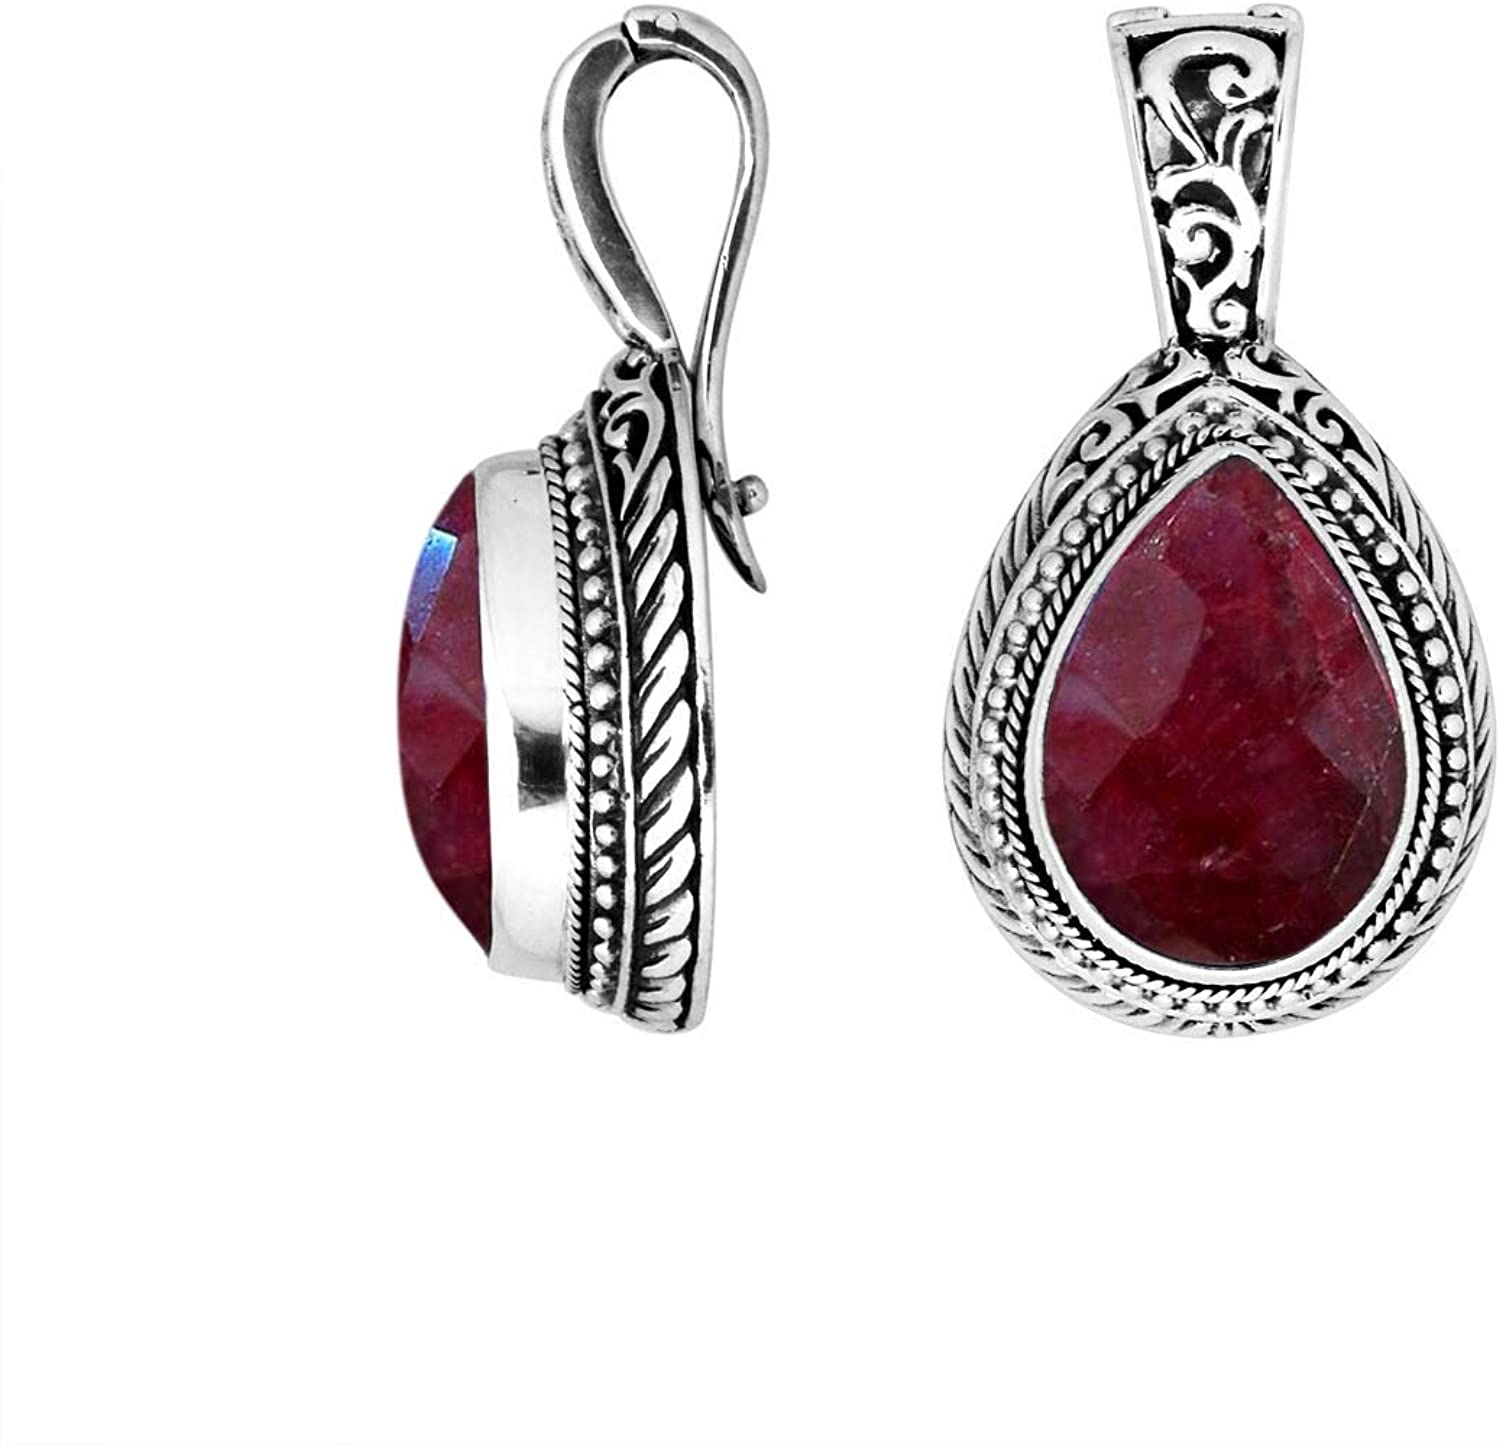 Sterling Silver Pear Shape Pendant with Ruby & Enhancer Pendant Bail AP8028RB